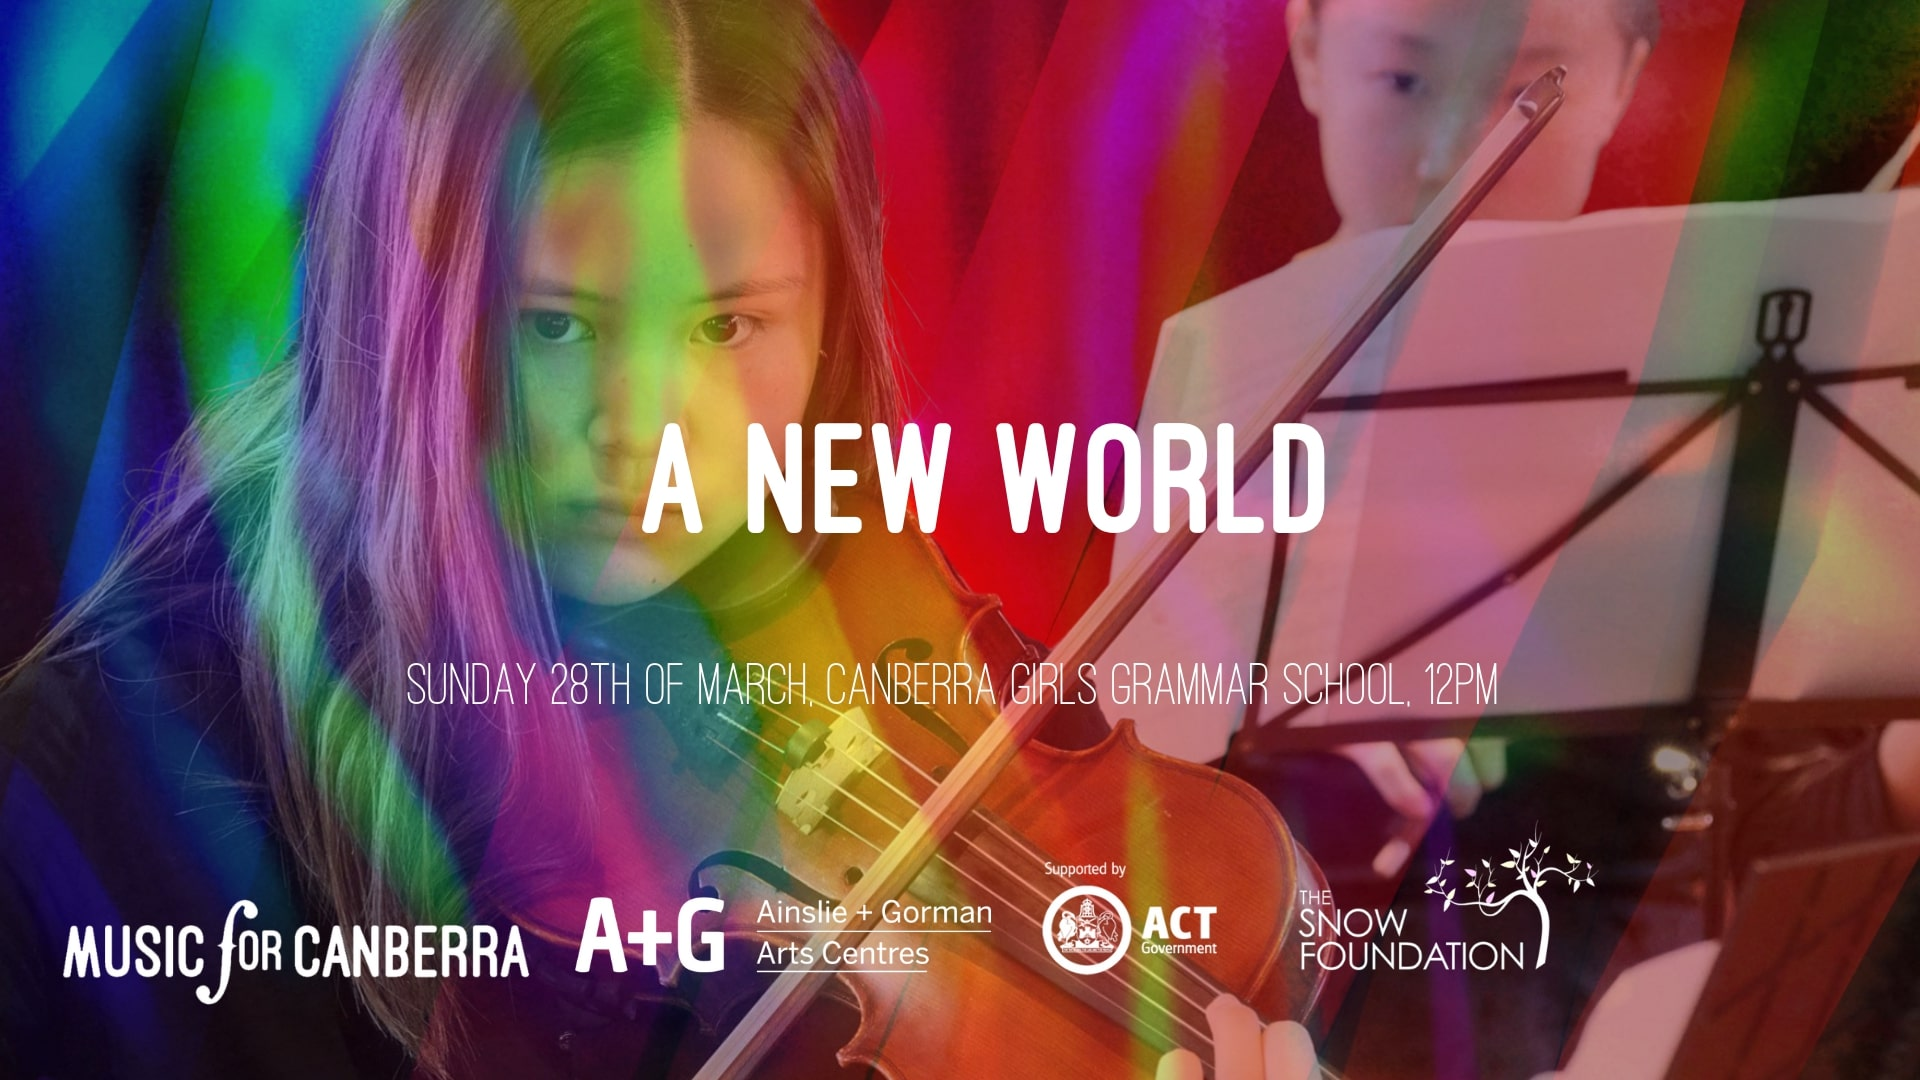 Rainbow swirls with see through image of violinist and white text